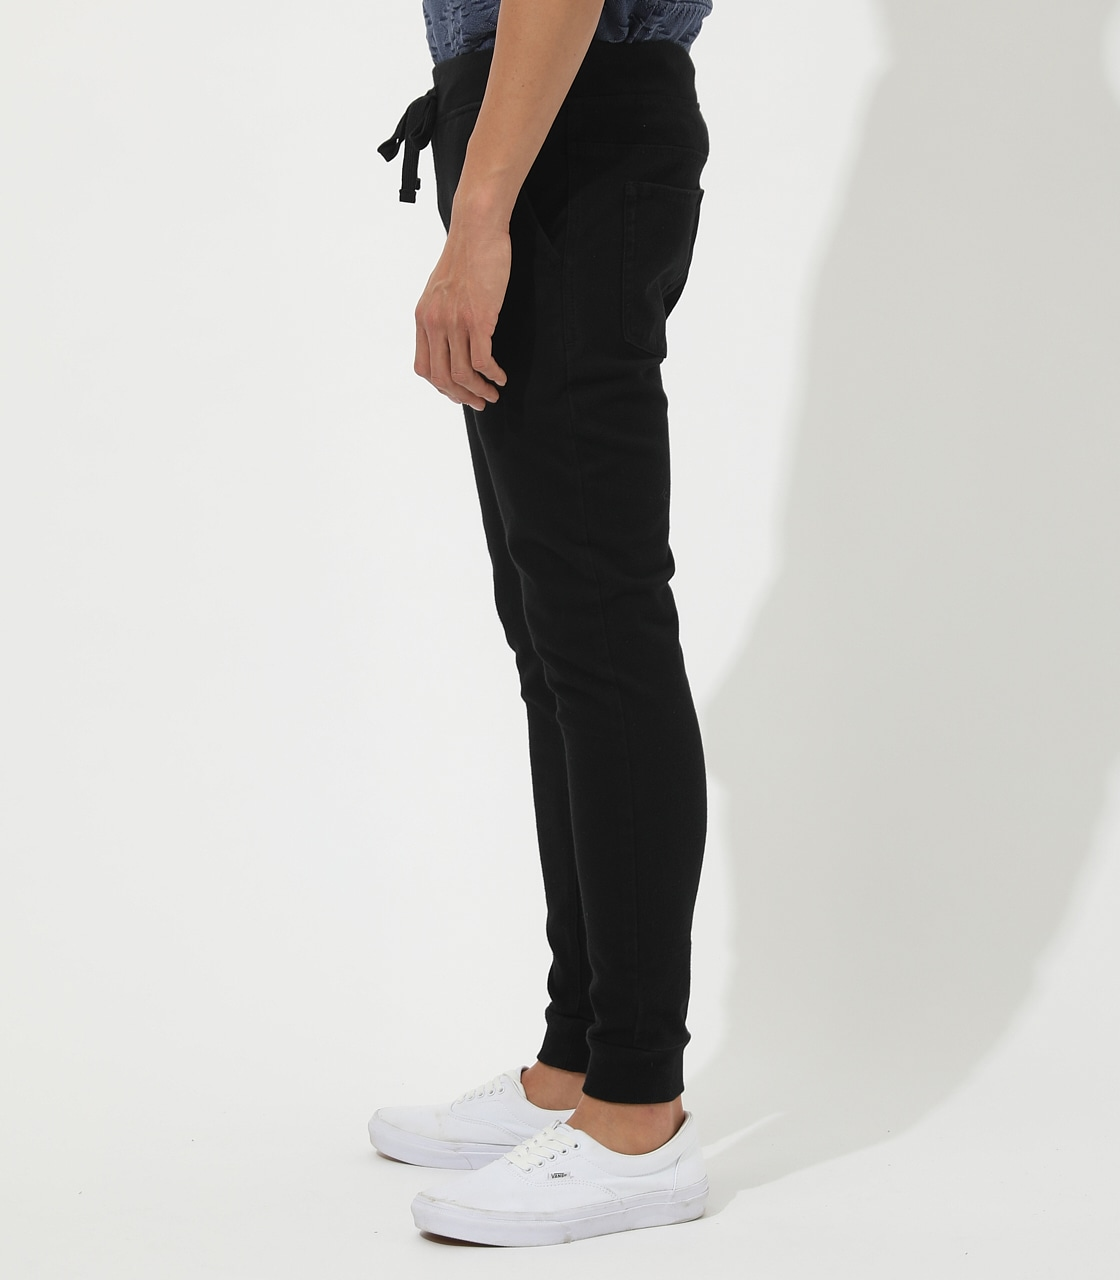 【AZUL BY MOUSSY】EASY ACTION SLIM JOGGER 詳細画像 BLK 5